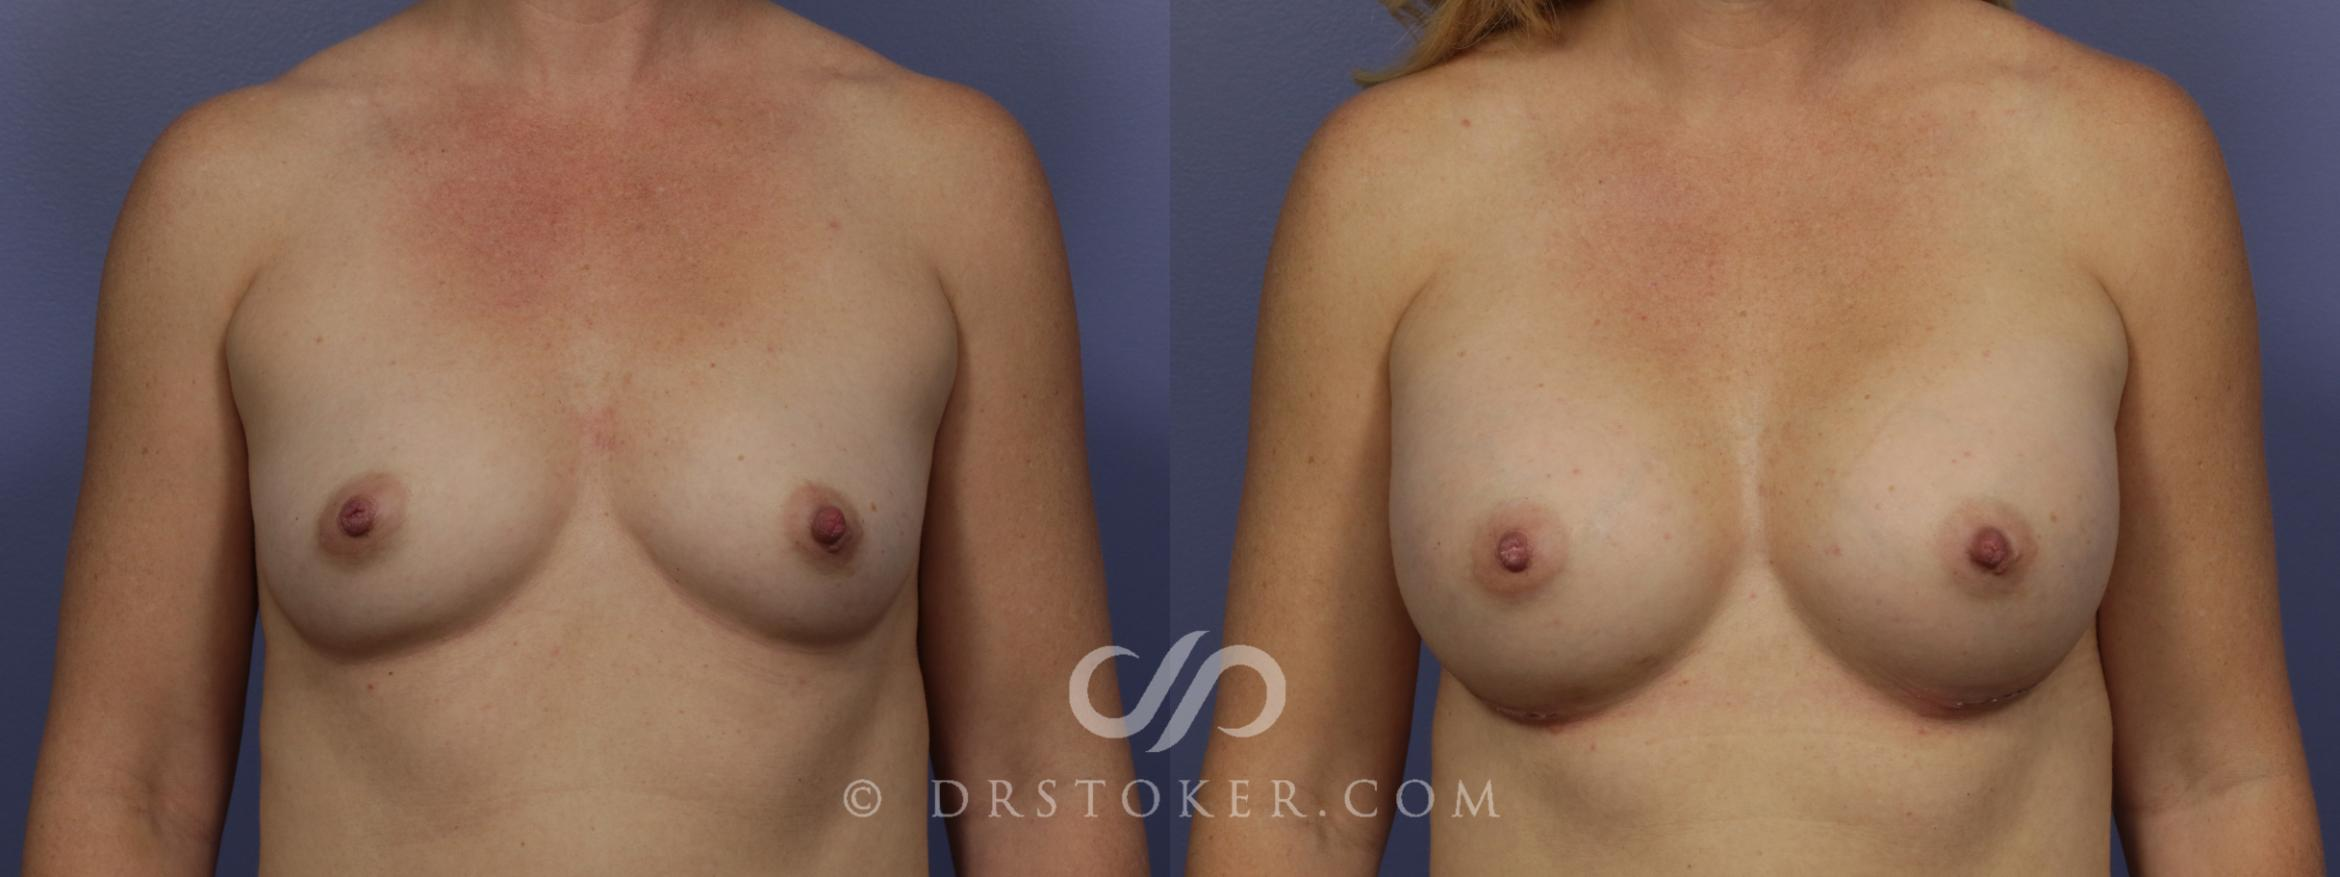 Breast Augmentation Case 1051 Before & After View #1 | Los Angeles, CA | Dr. David Stoker